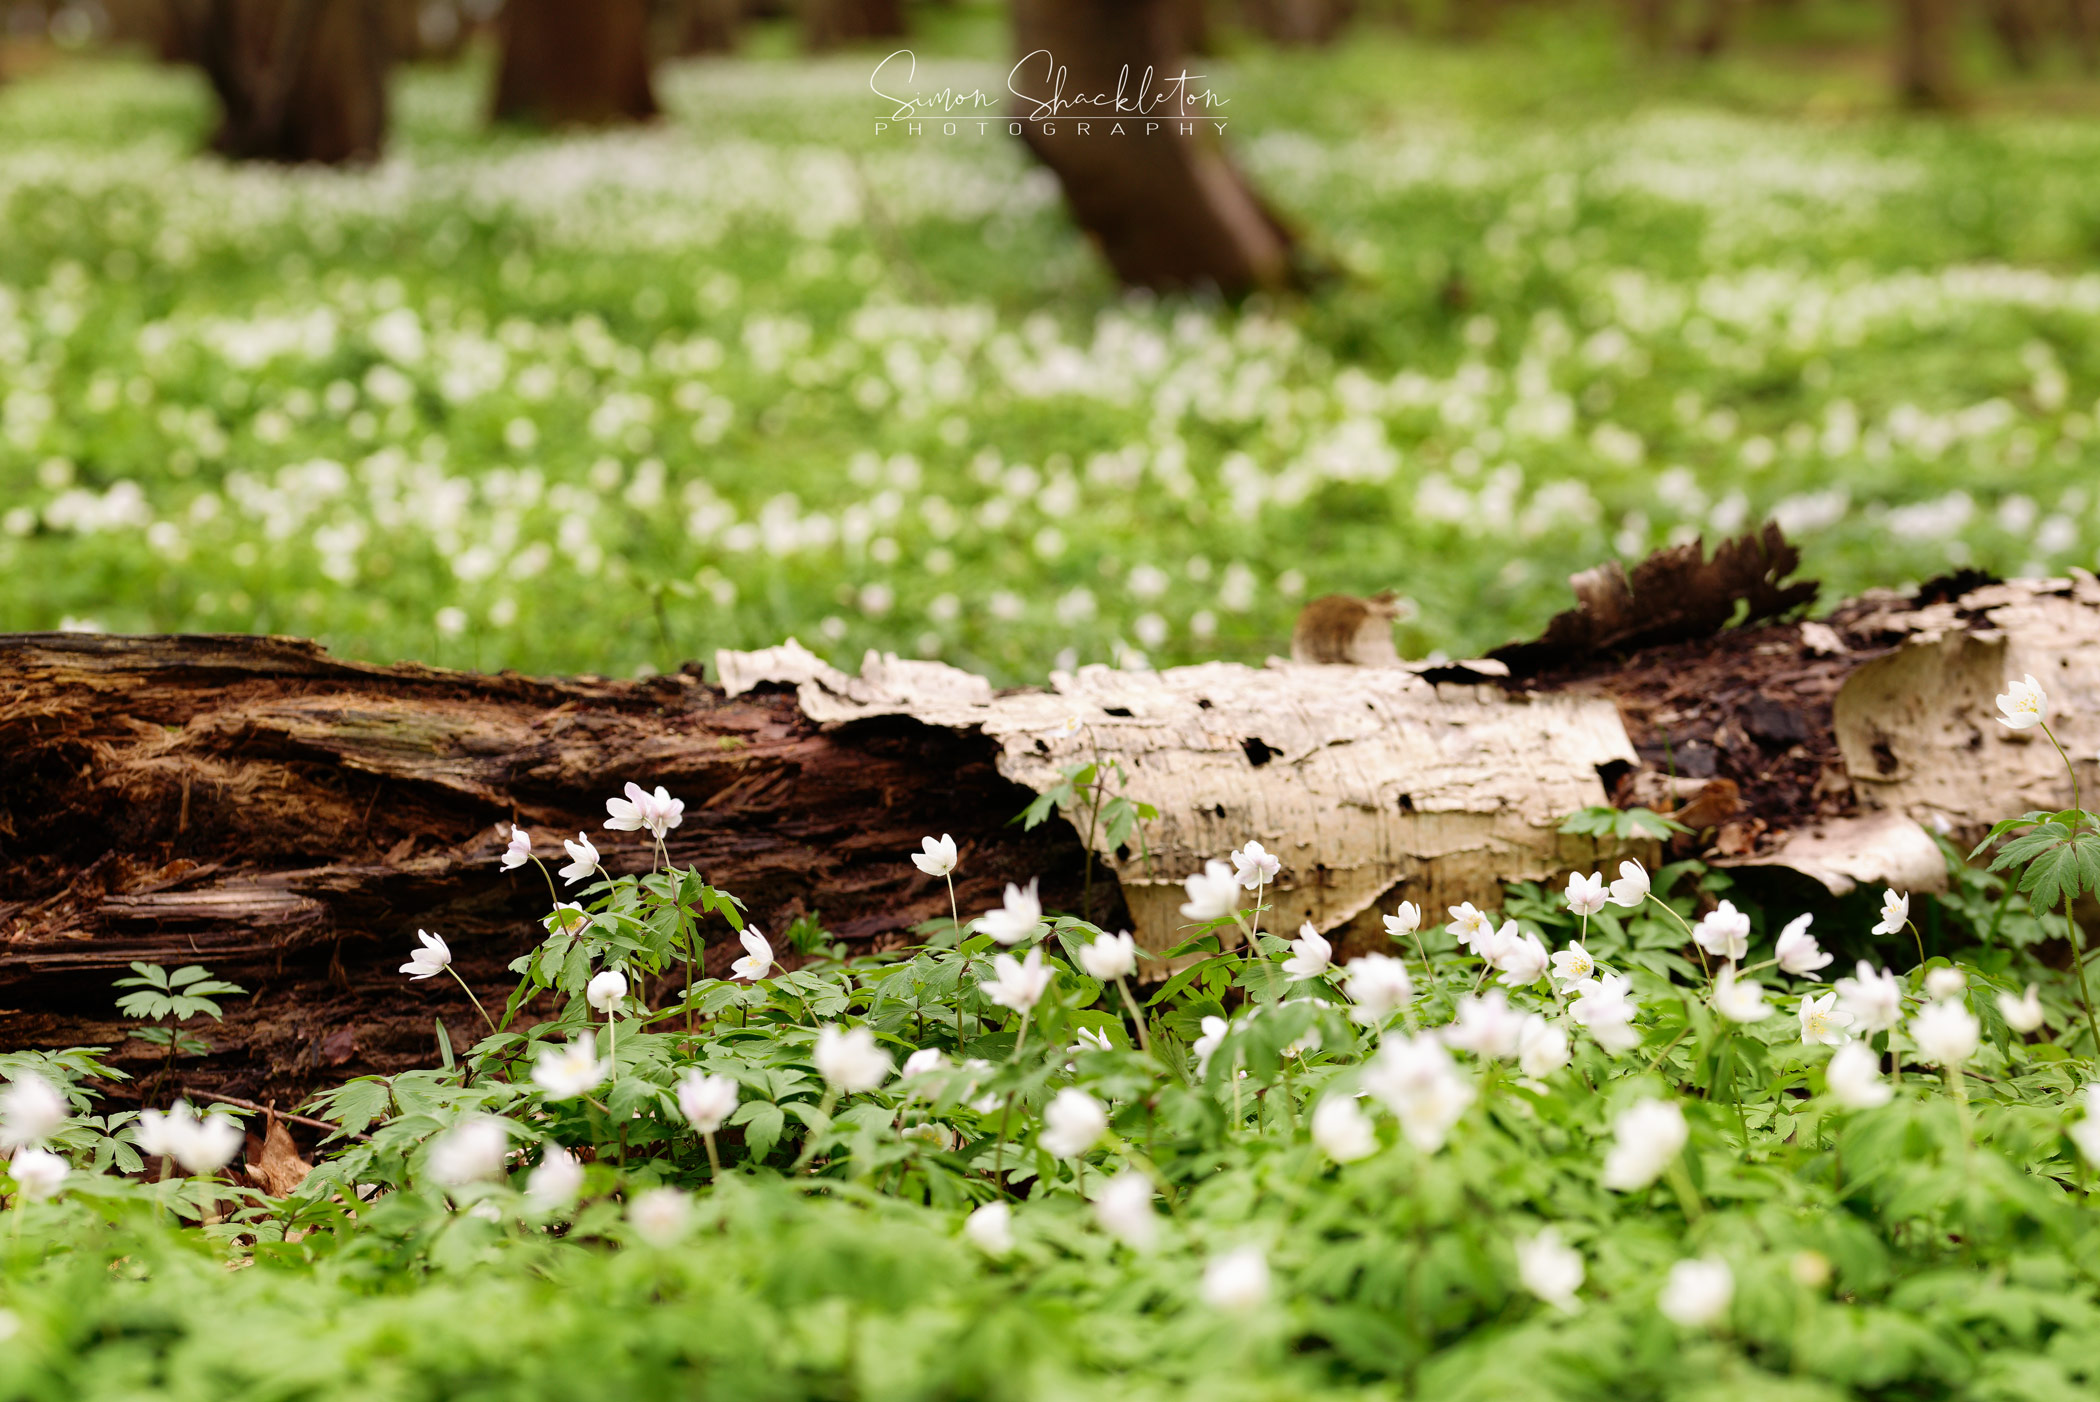 A carpet of anemones in a Kentish Woodland.